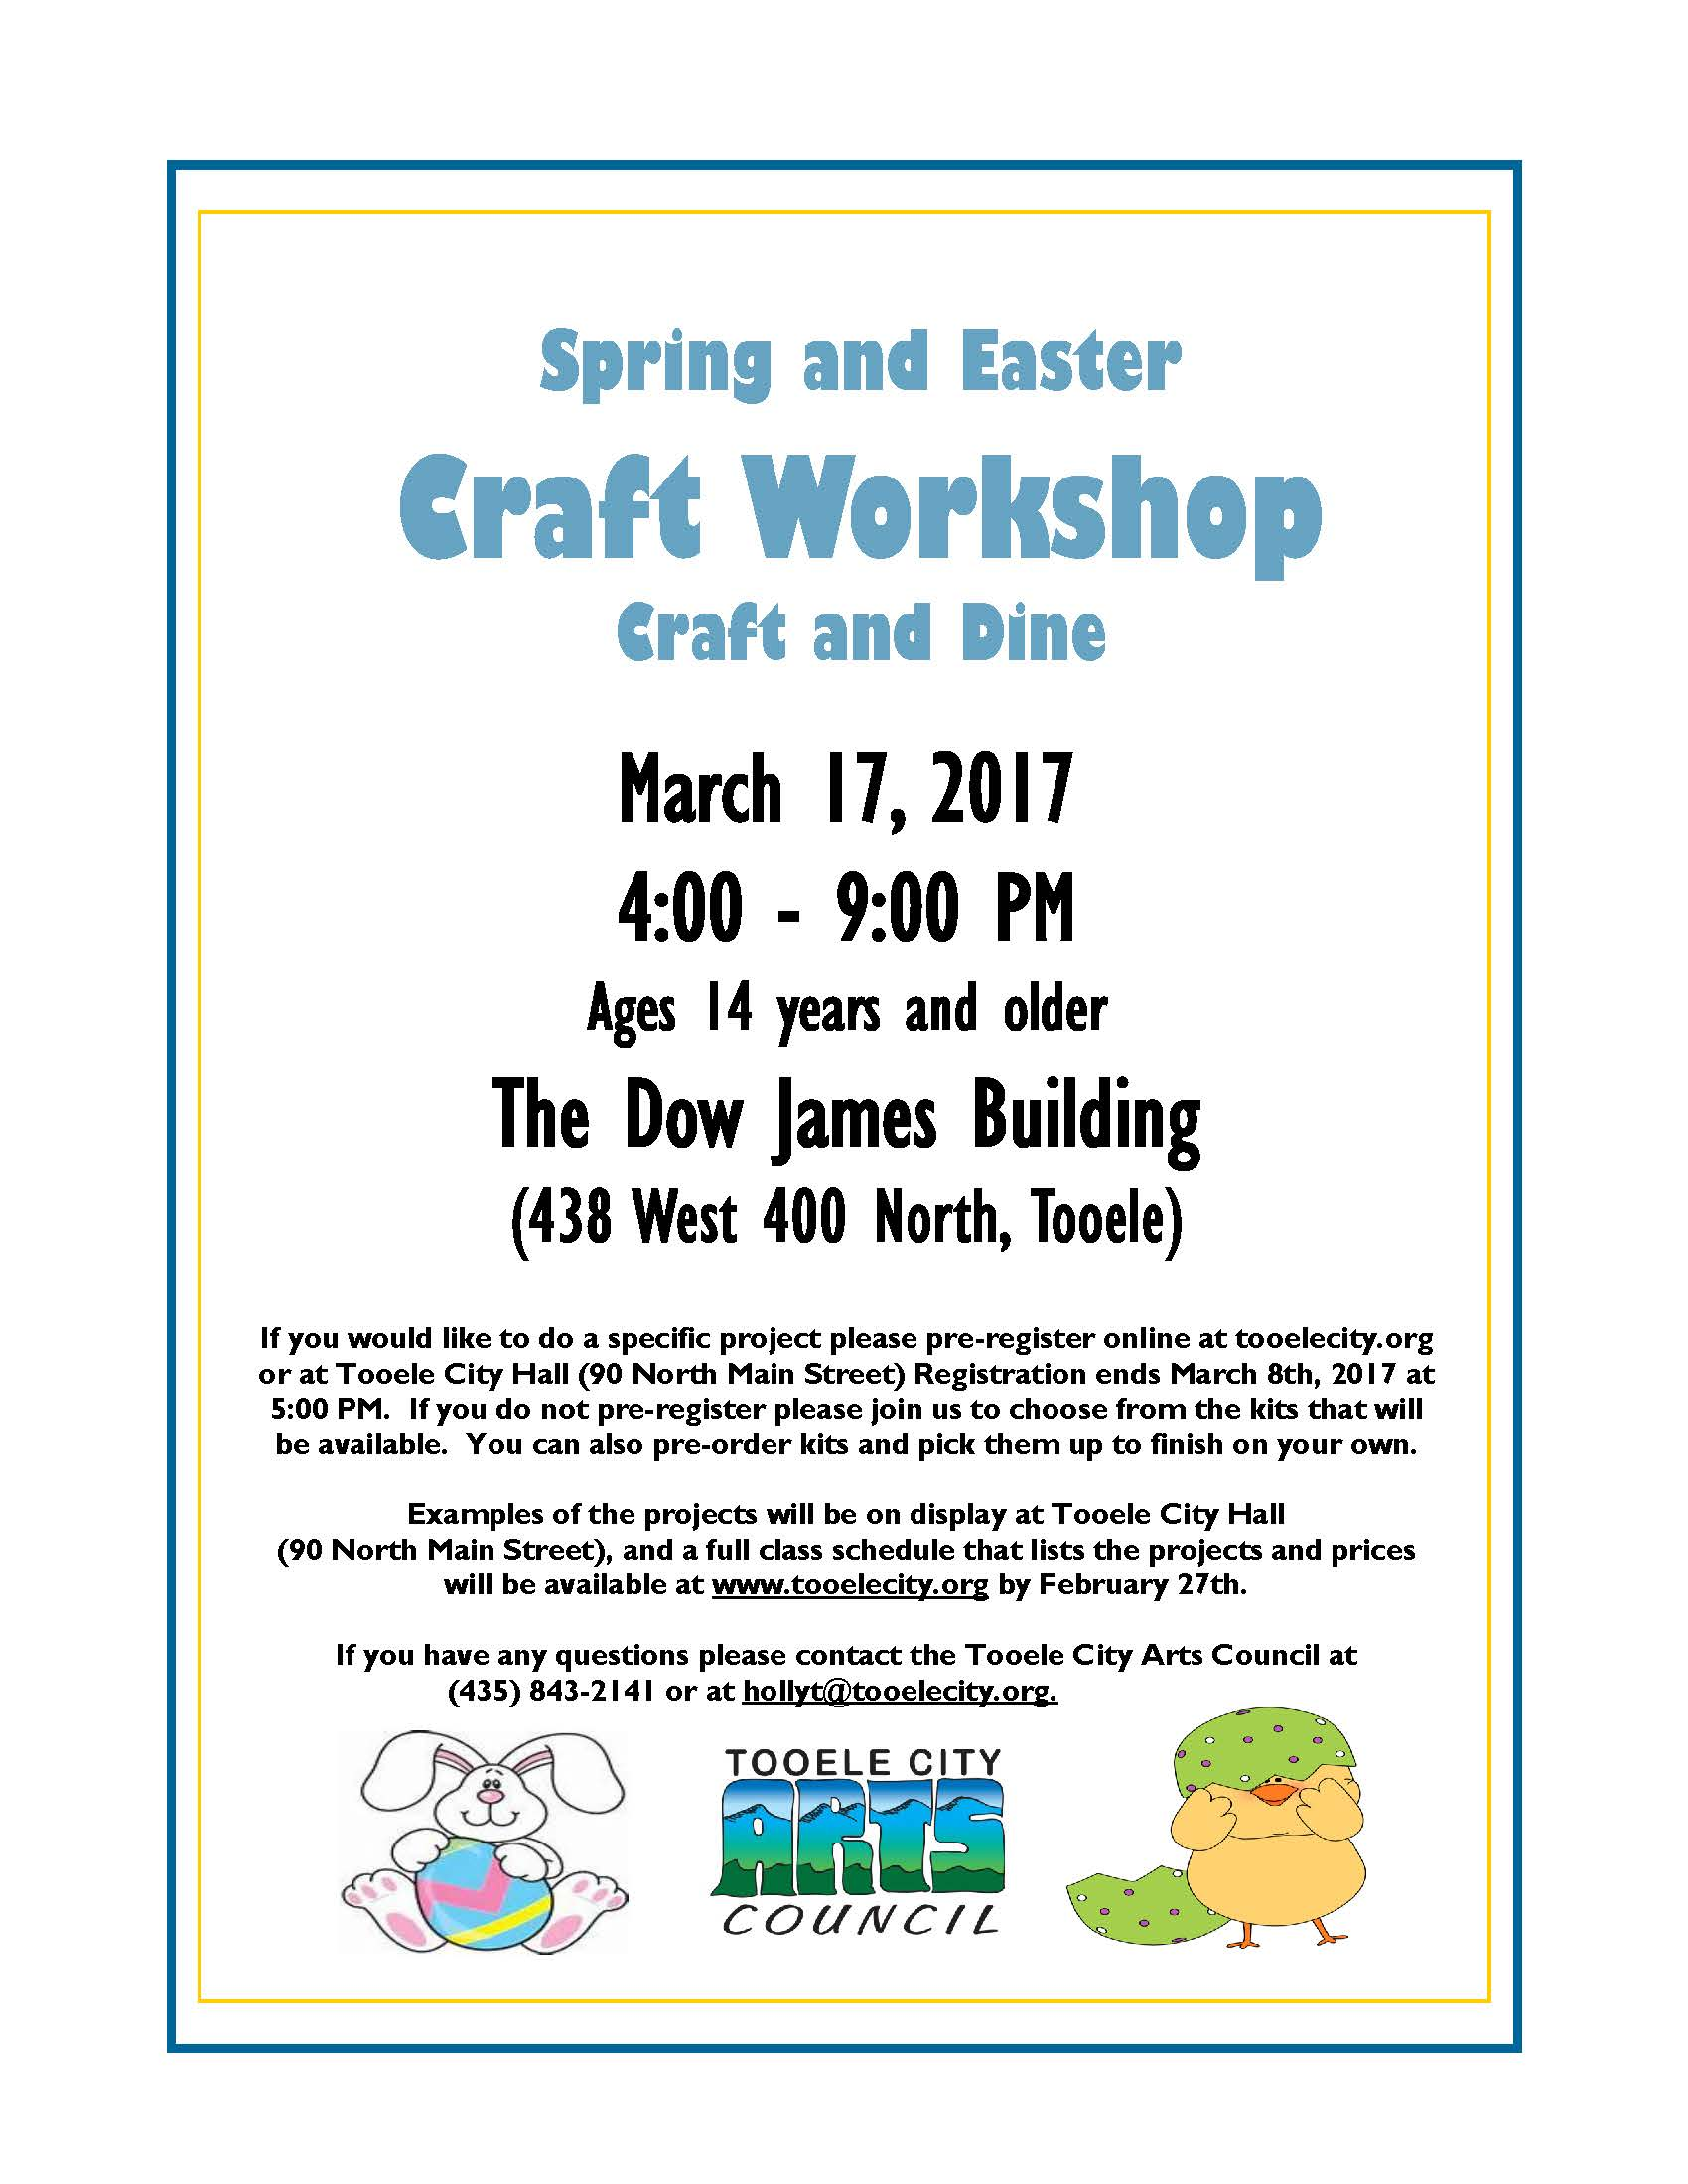 Register Now for the Craft and Dine: Spring & Easter Craft Workshop